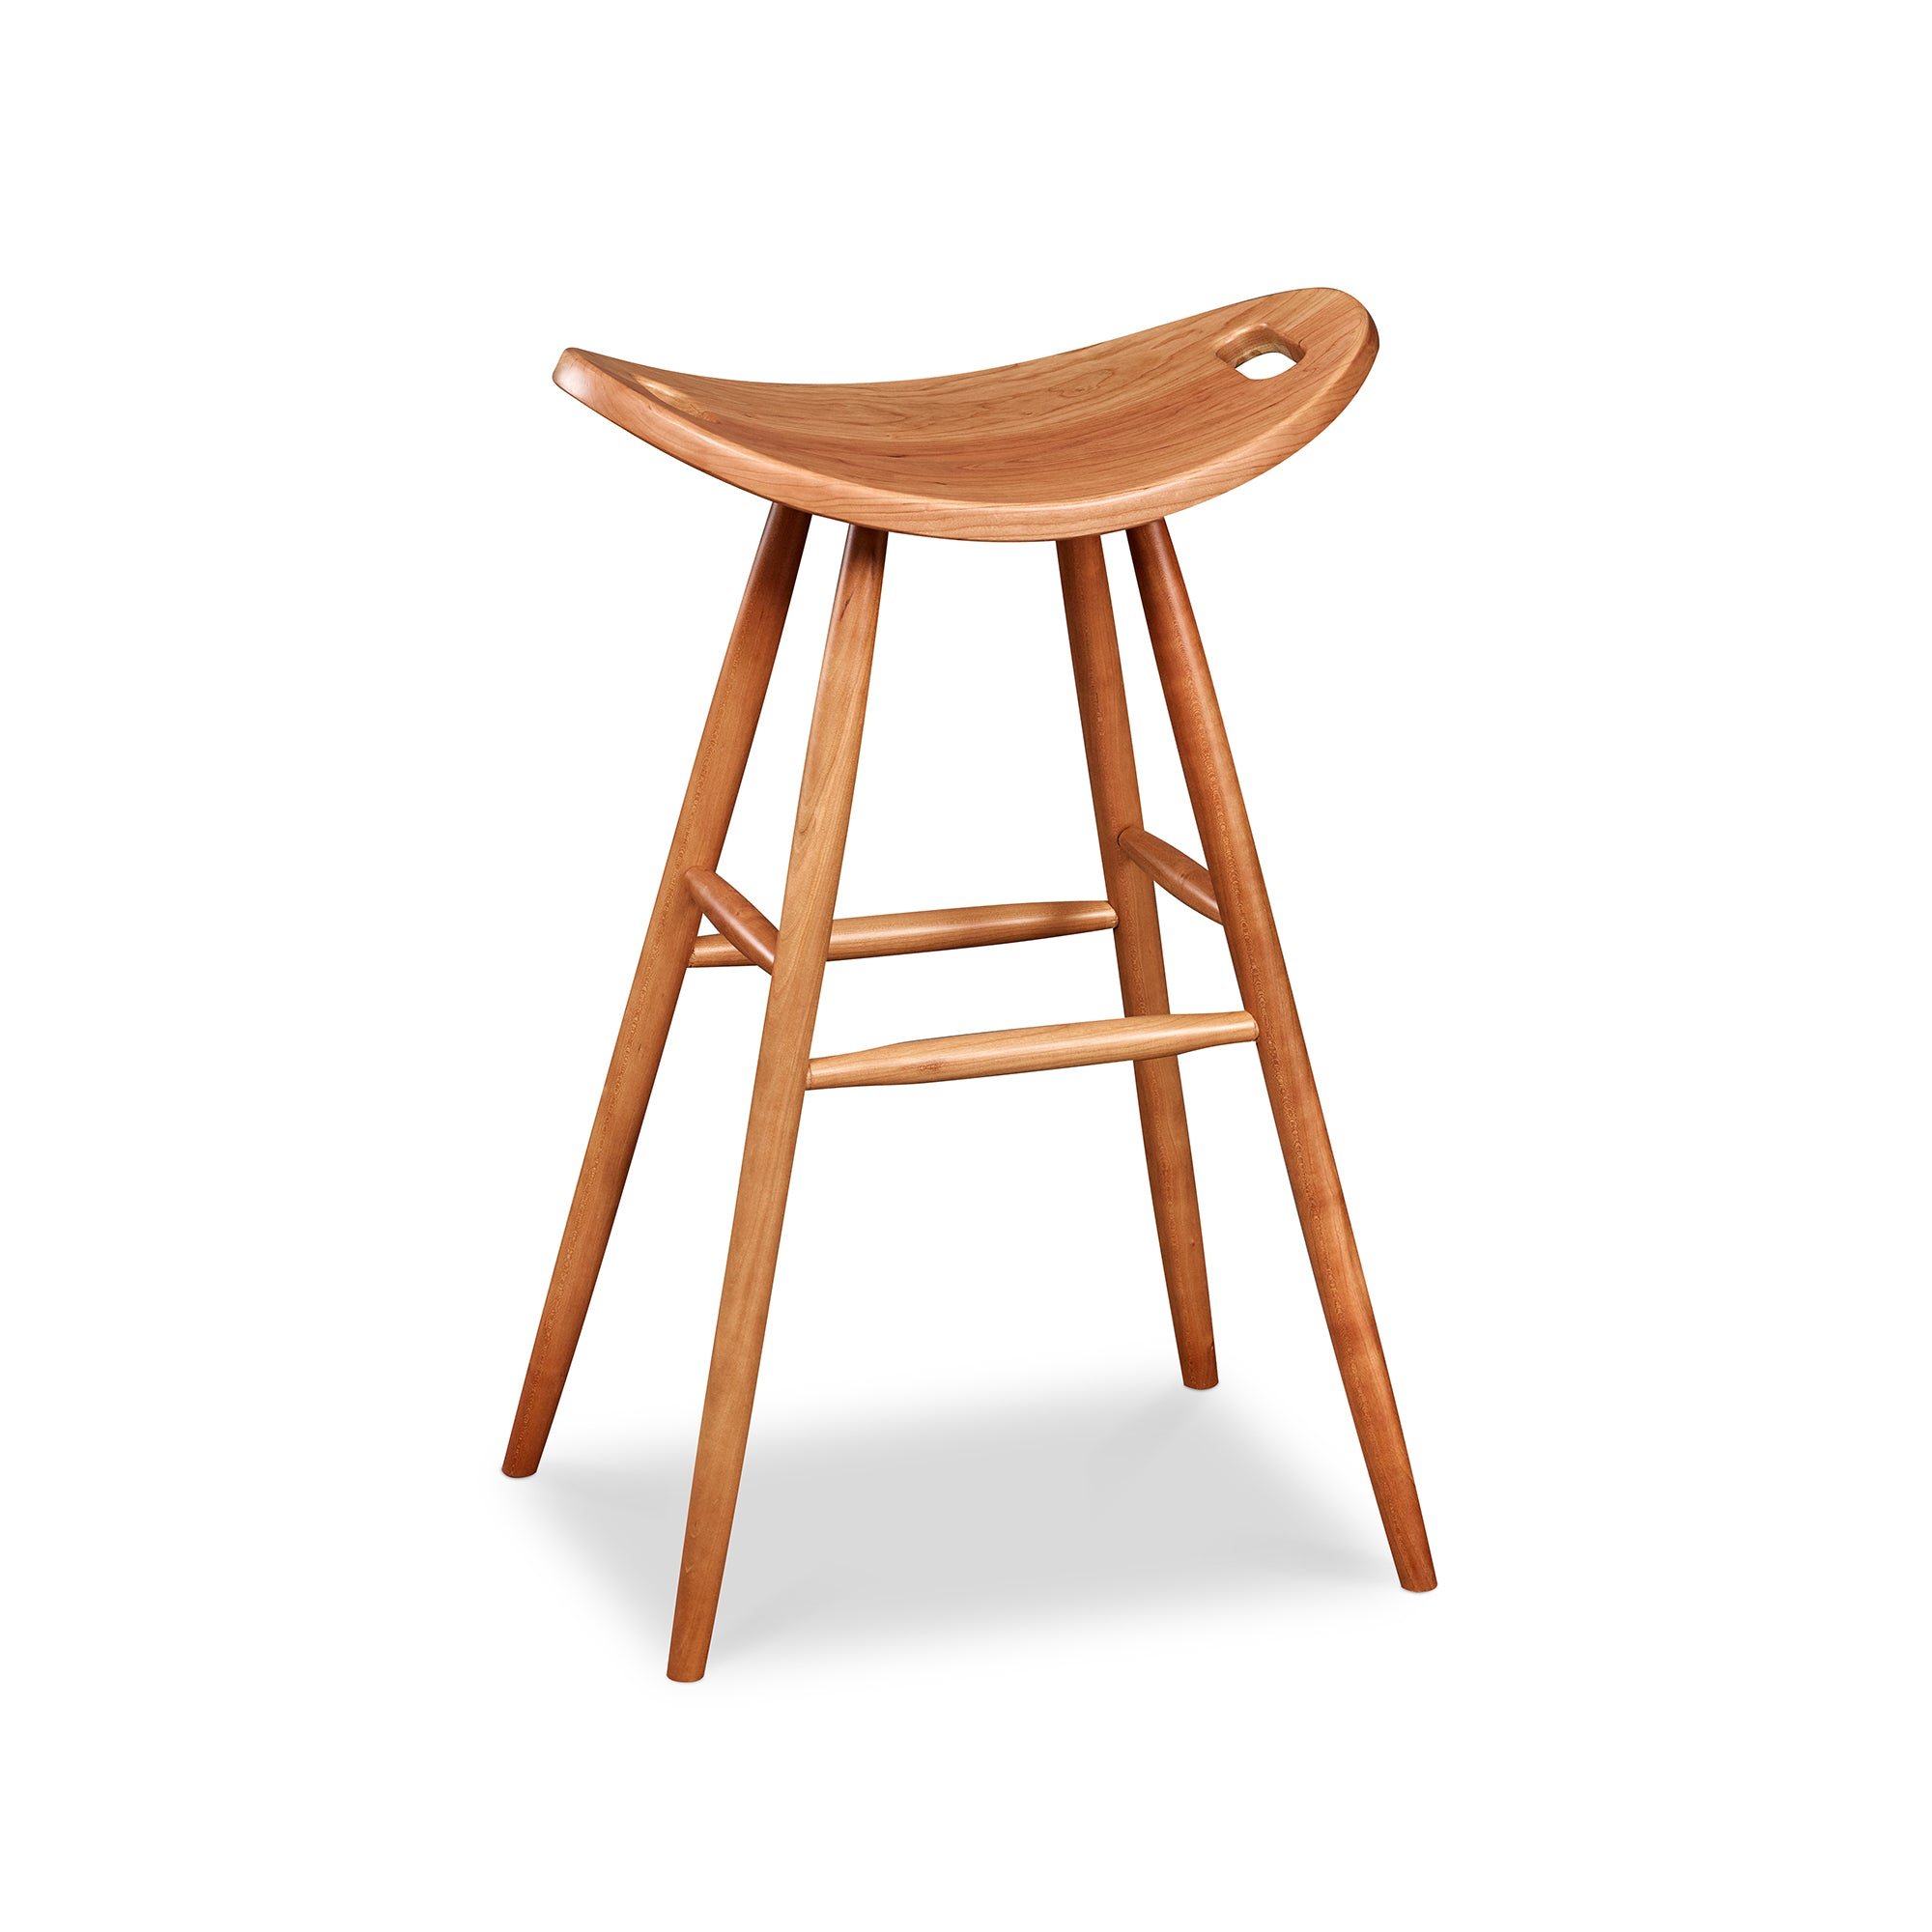 Remarkable Saddle Stool Chilton Furniture Gmtry Best Dining Table And Chair Ideas Images Gmtryco